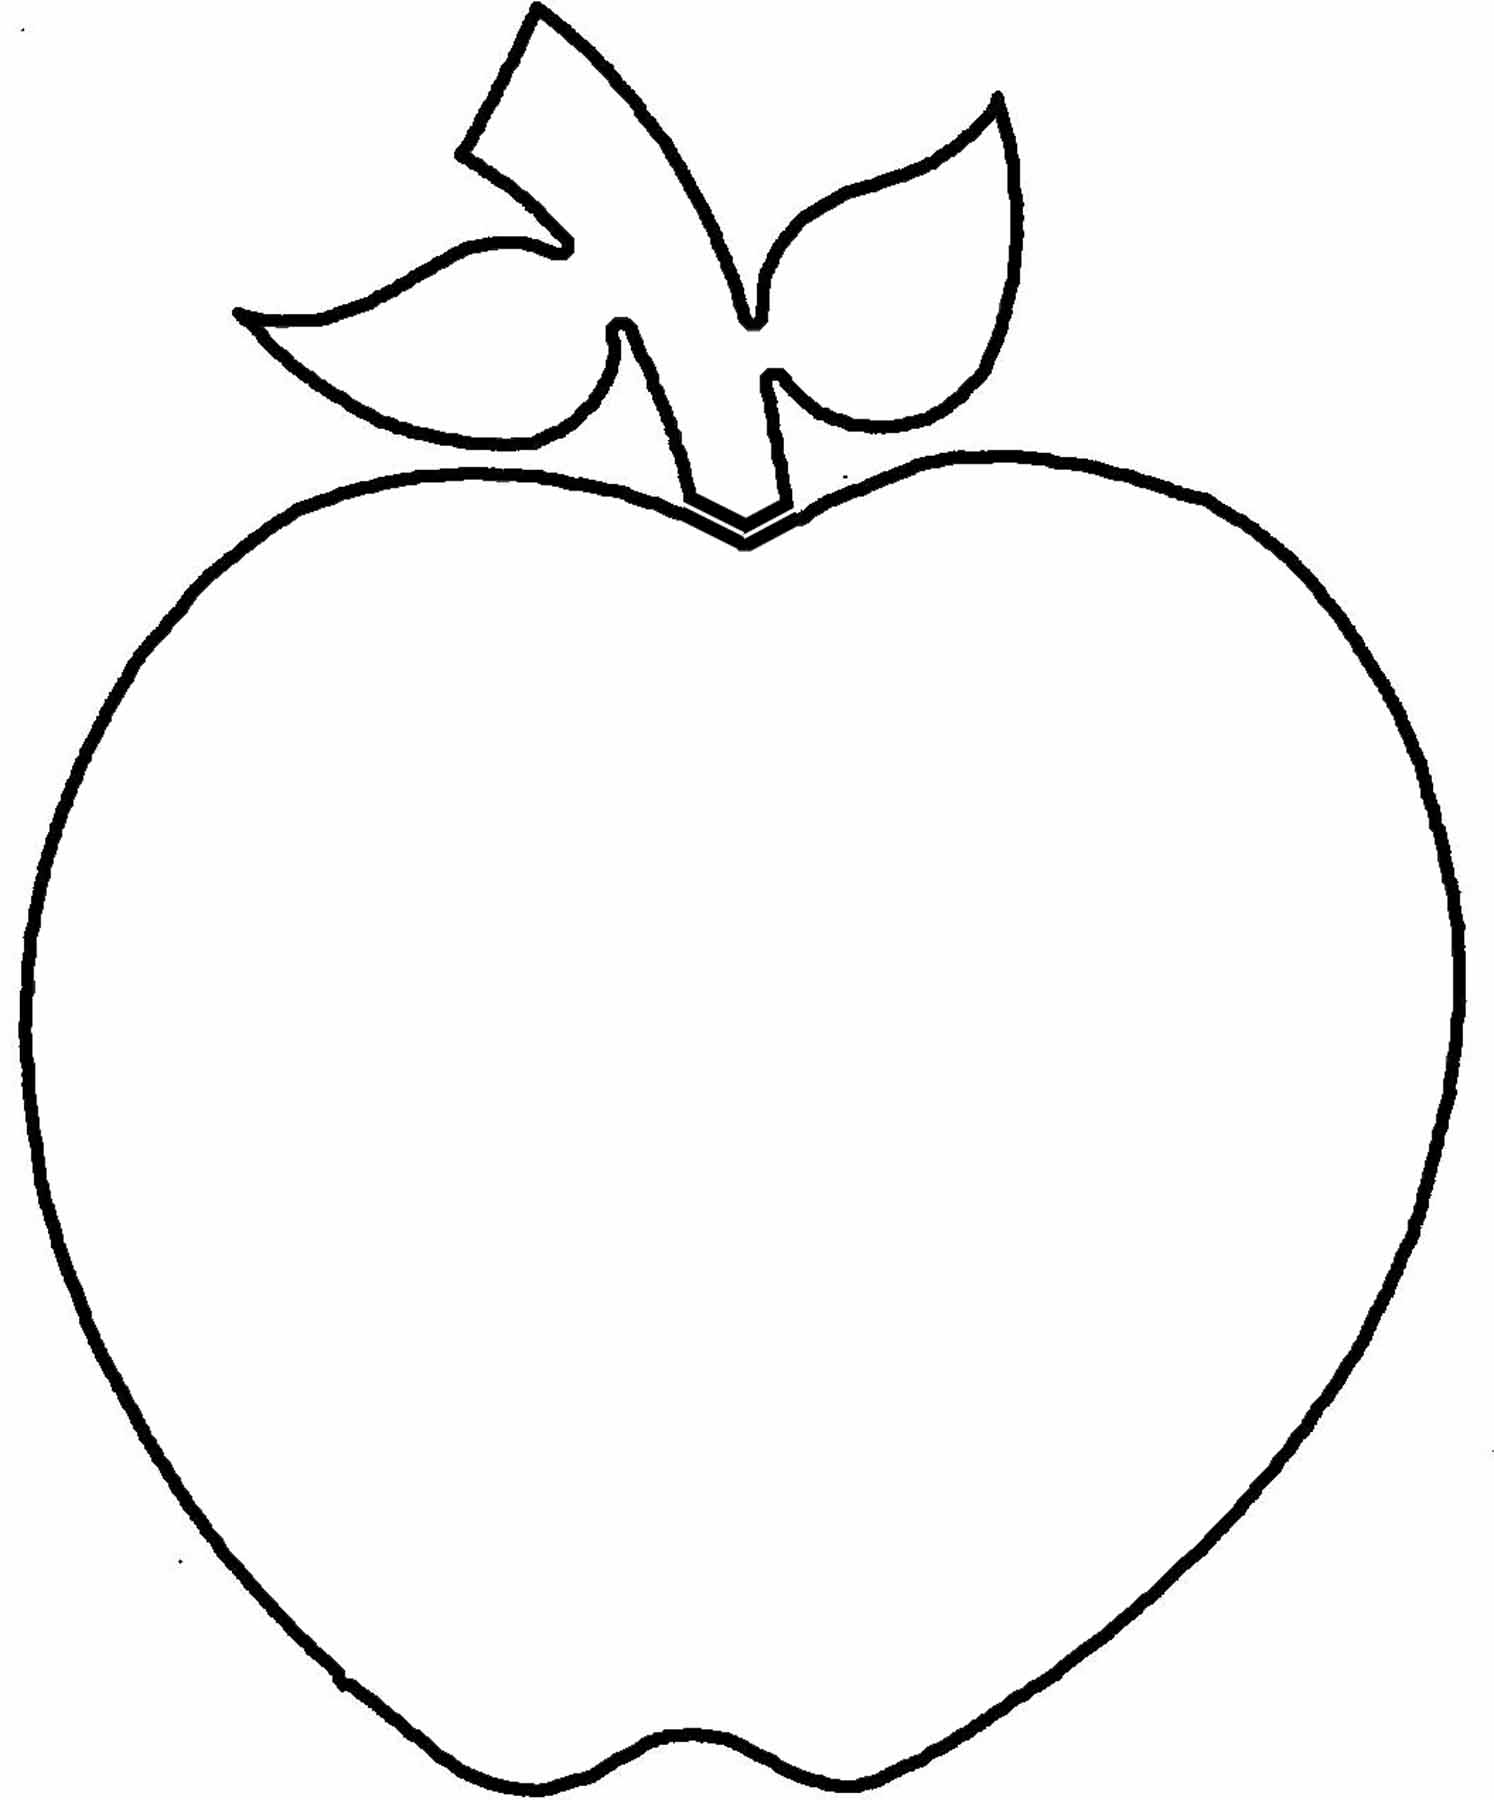 Apple Outline Clip Art Clipart Panda